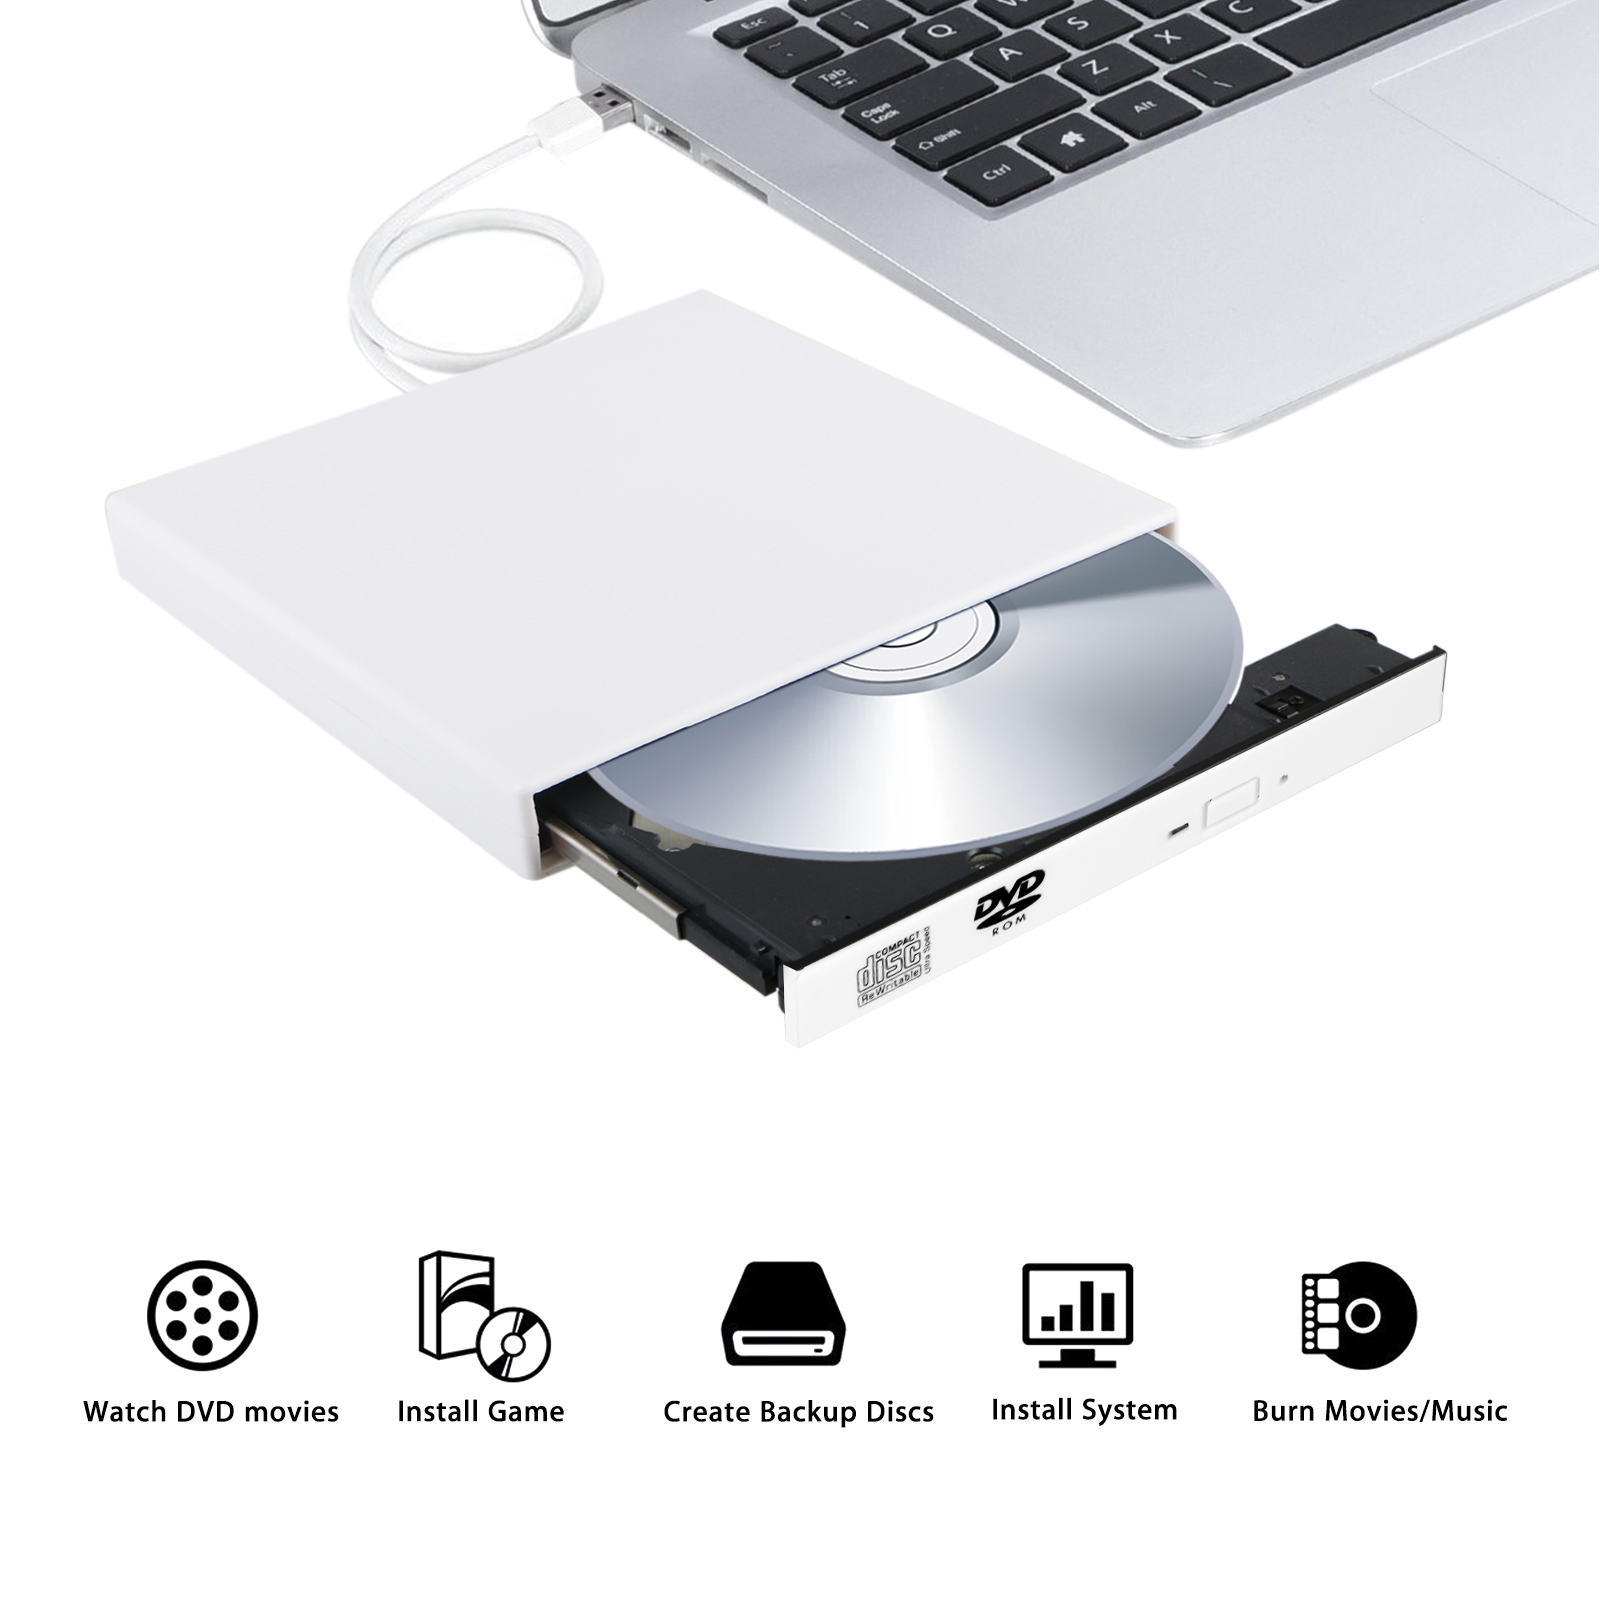 TSV USB 2.0 External DVD ROM Combo CD-RW CD-ROM Burner Drive with Two Cables for PC Laptop